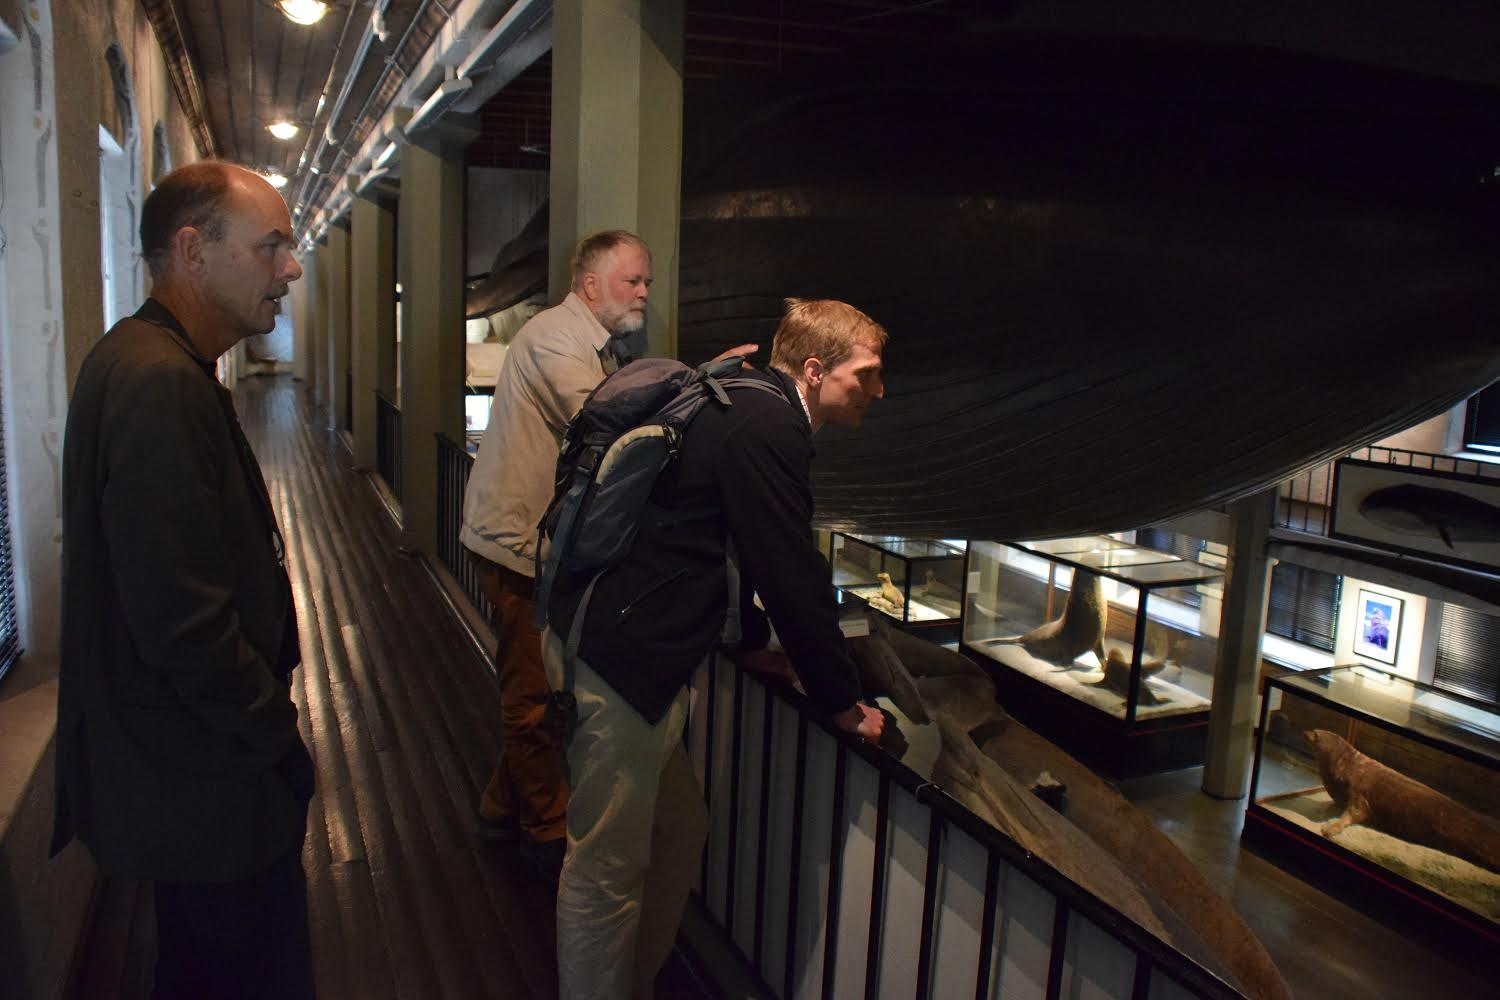 A guided tour of the Sandefjord Whaling Museum, with Stig Tore Lunde.